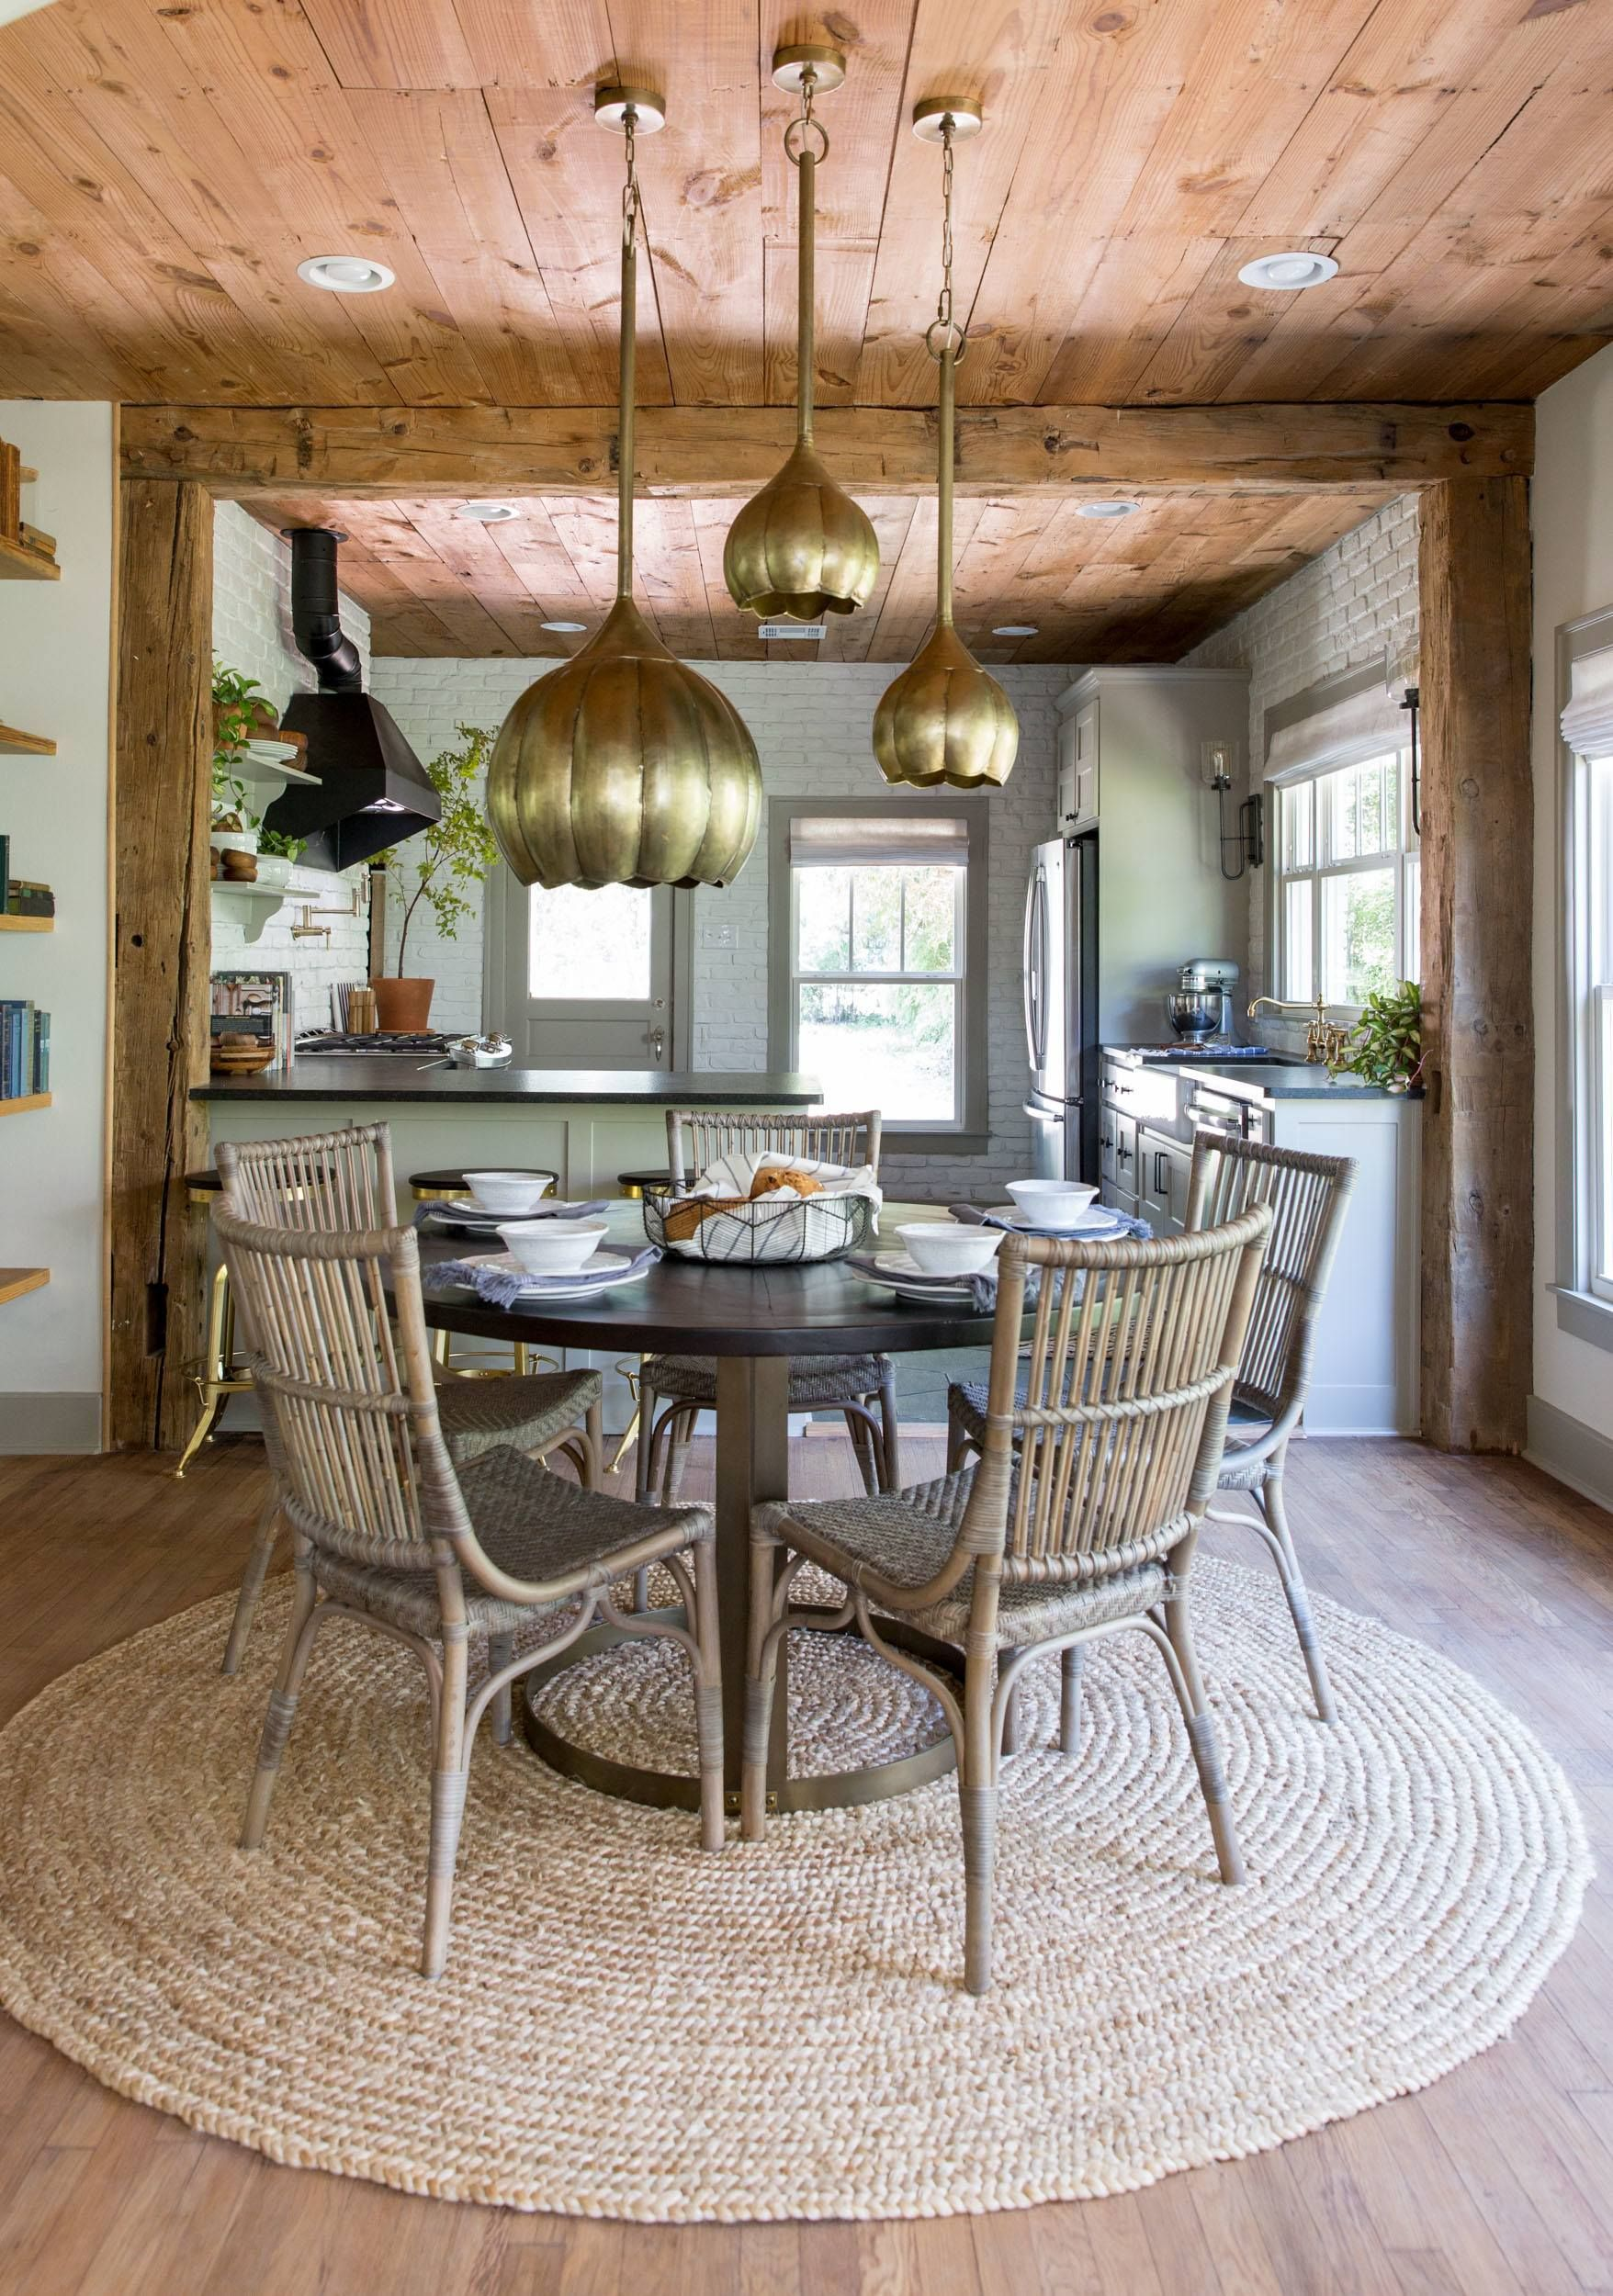 Fixer Upper Season 4 Chip And Joanna Gaines Episode 15 The Giraffe House Dining Shiplap